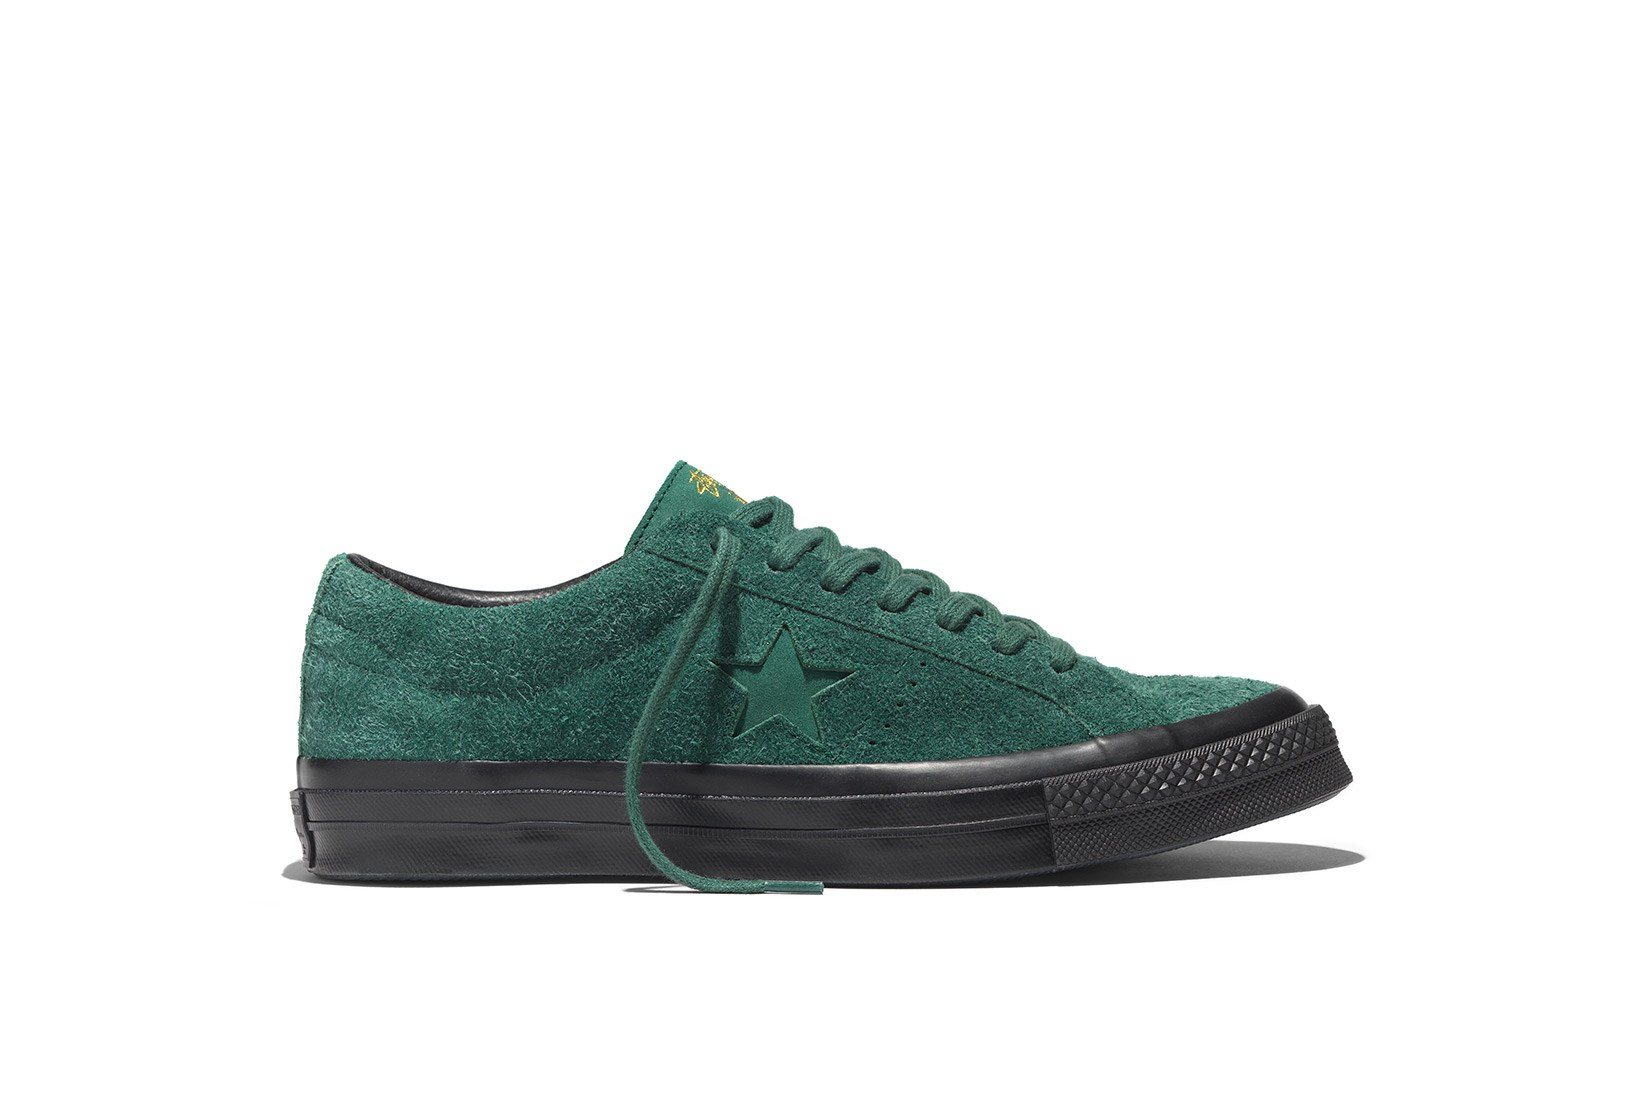 stussy-converse-one-star-silhouette-3